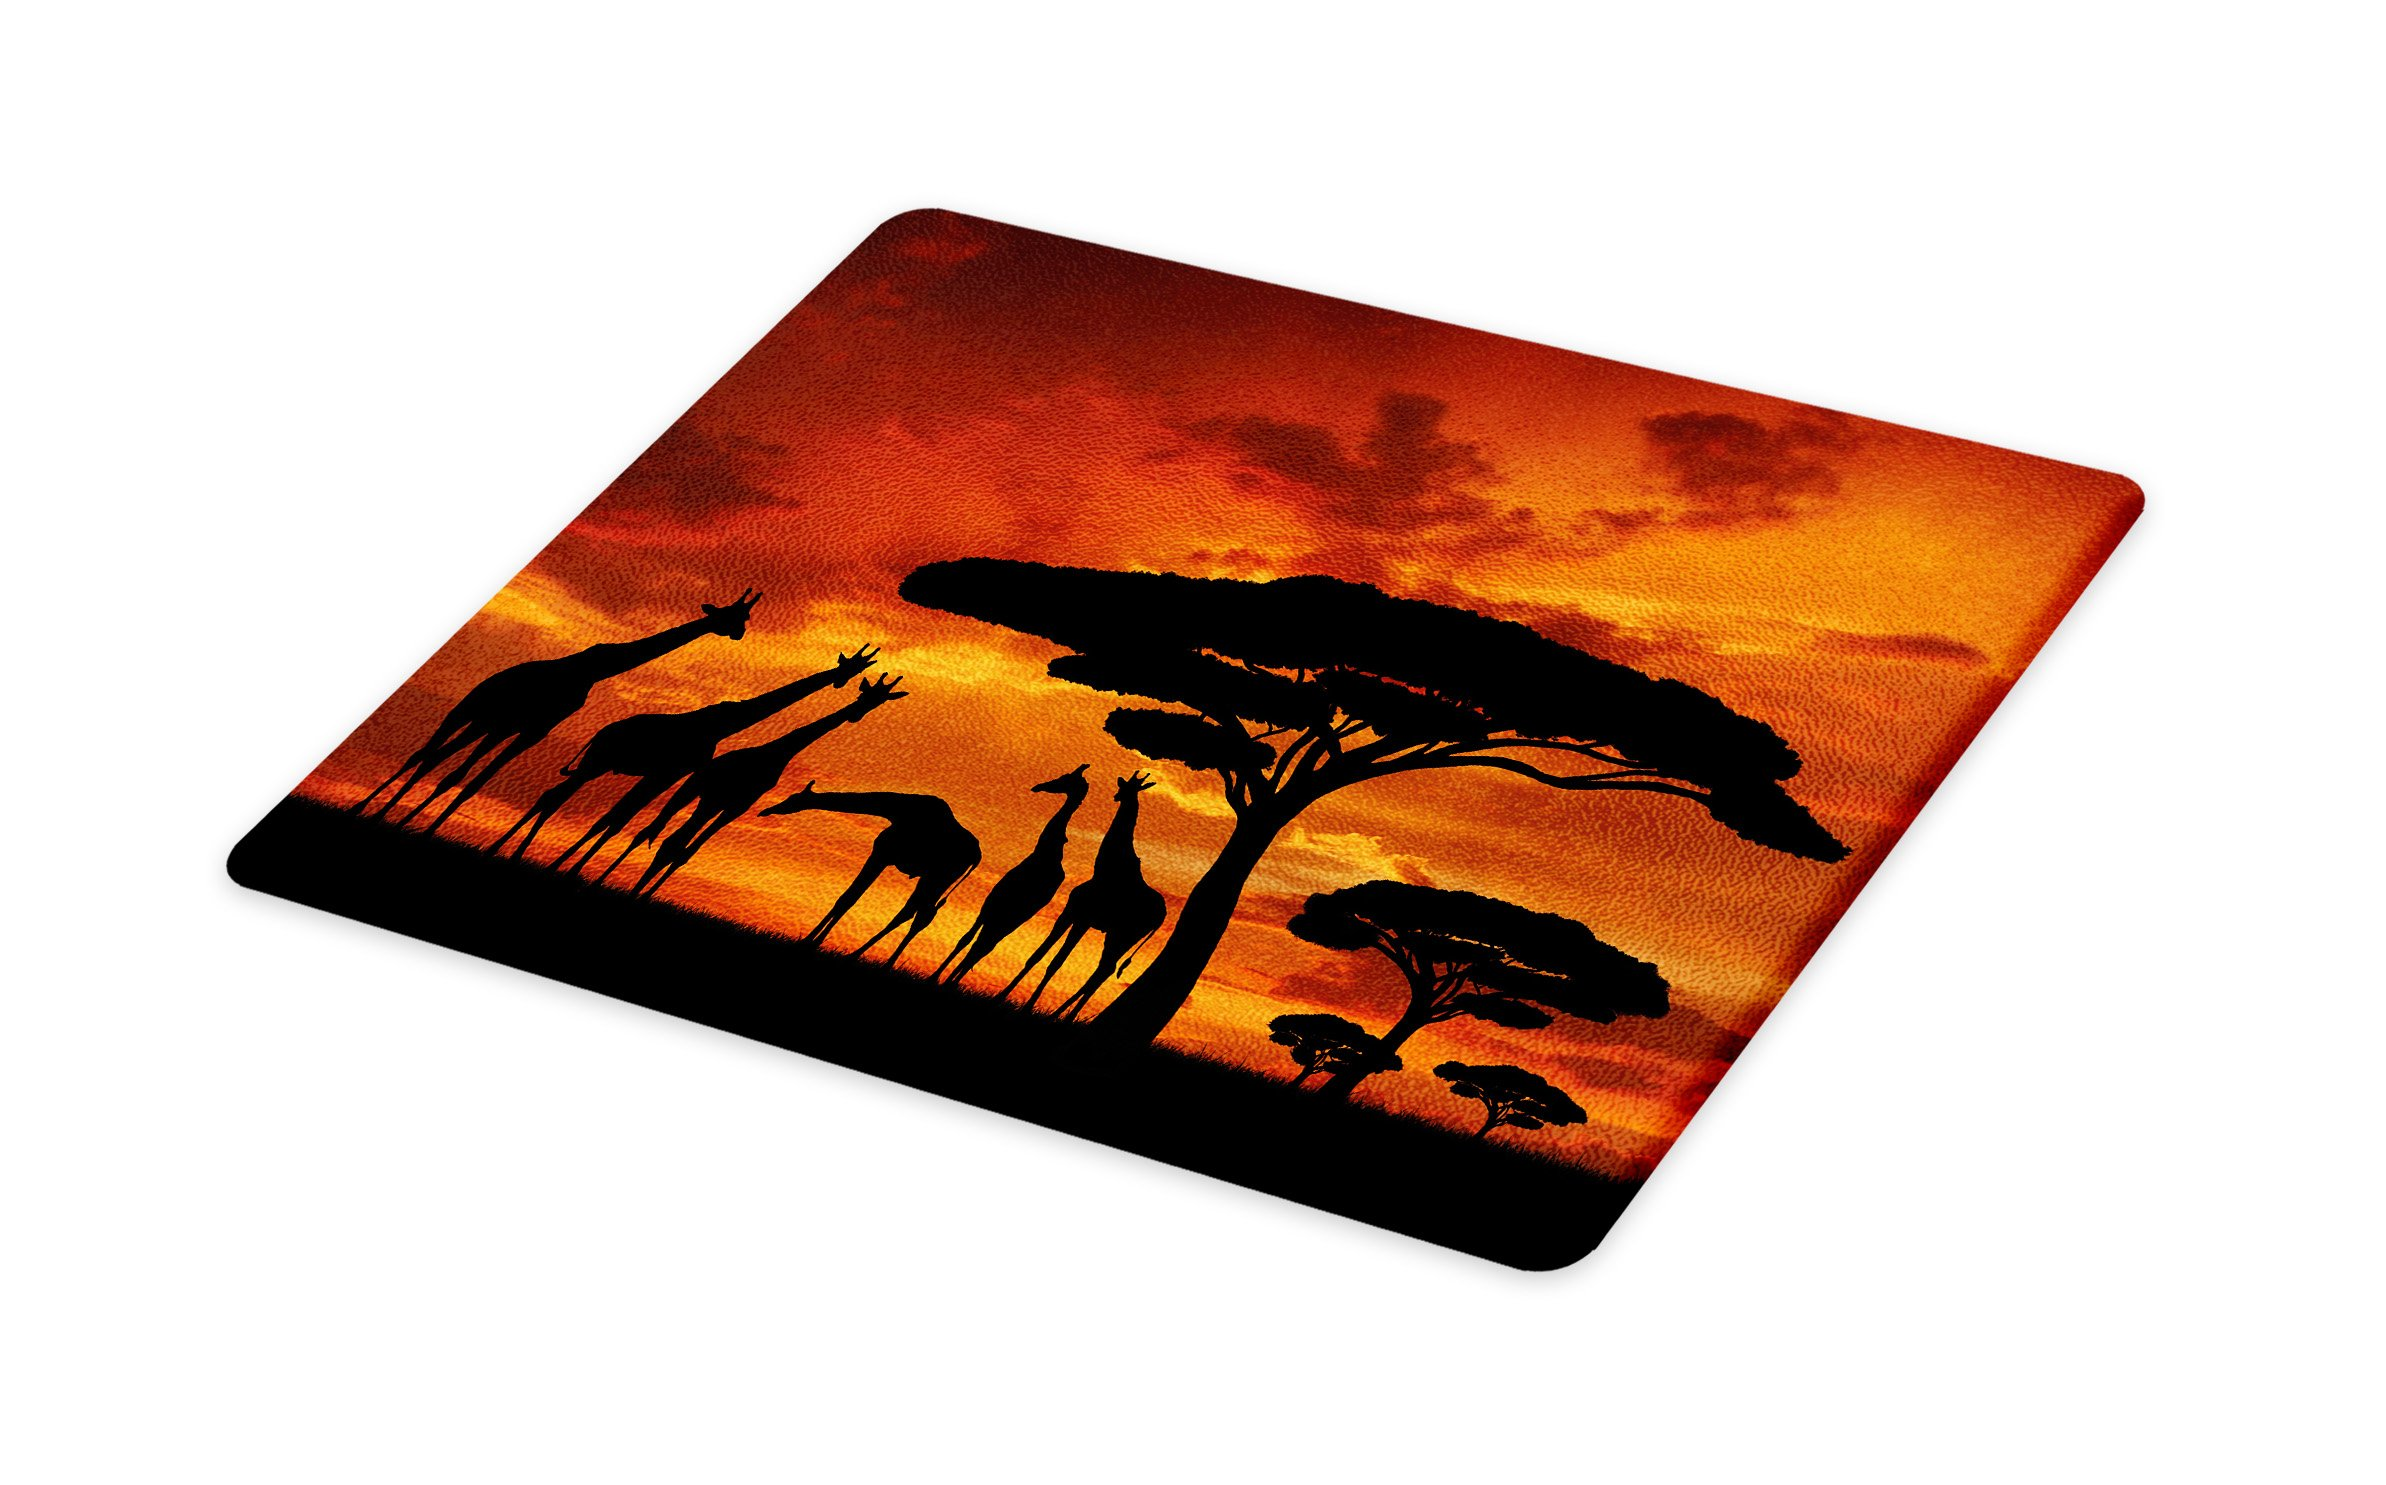 Lunarable Africa Cutting Board, Safari Animal with Giraffe Crew with Majestic Tree at Sunrise in Kenya, Decorative Tempered Glass Cutting and Serving Board, Large Size, Burnt Orange and Black